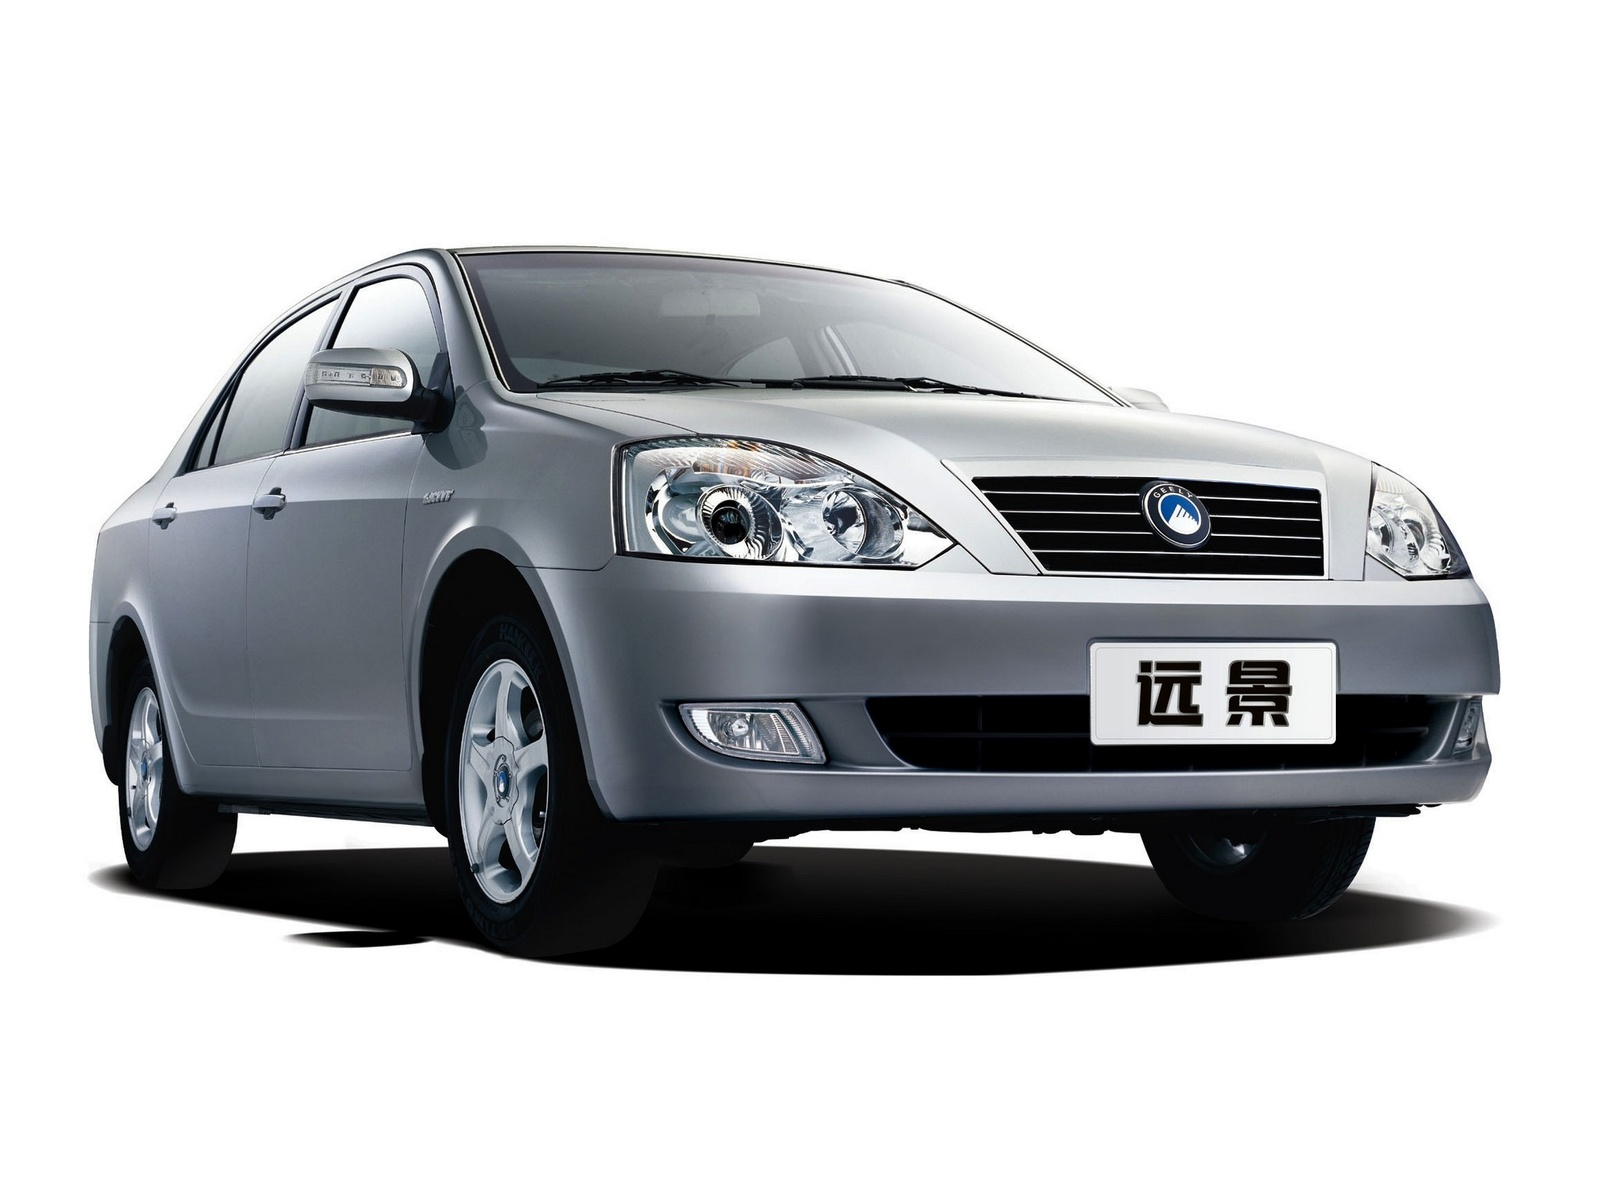 Geely vision photo - 8